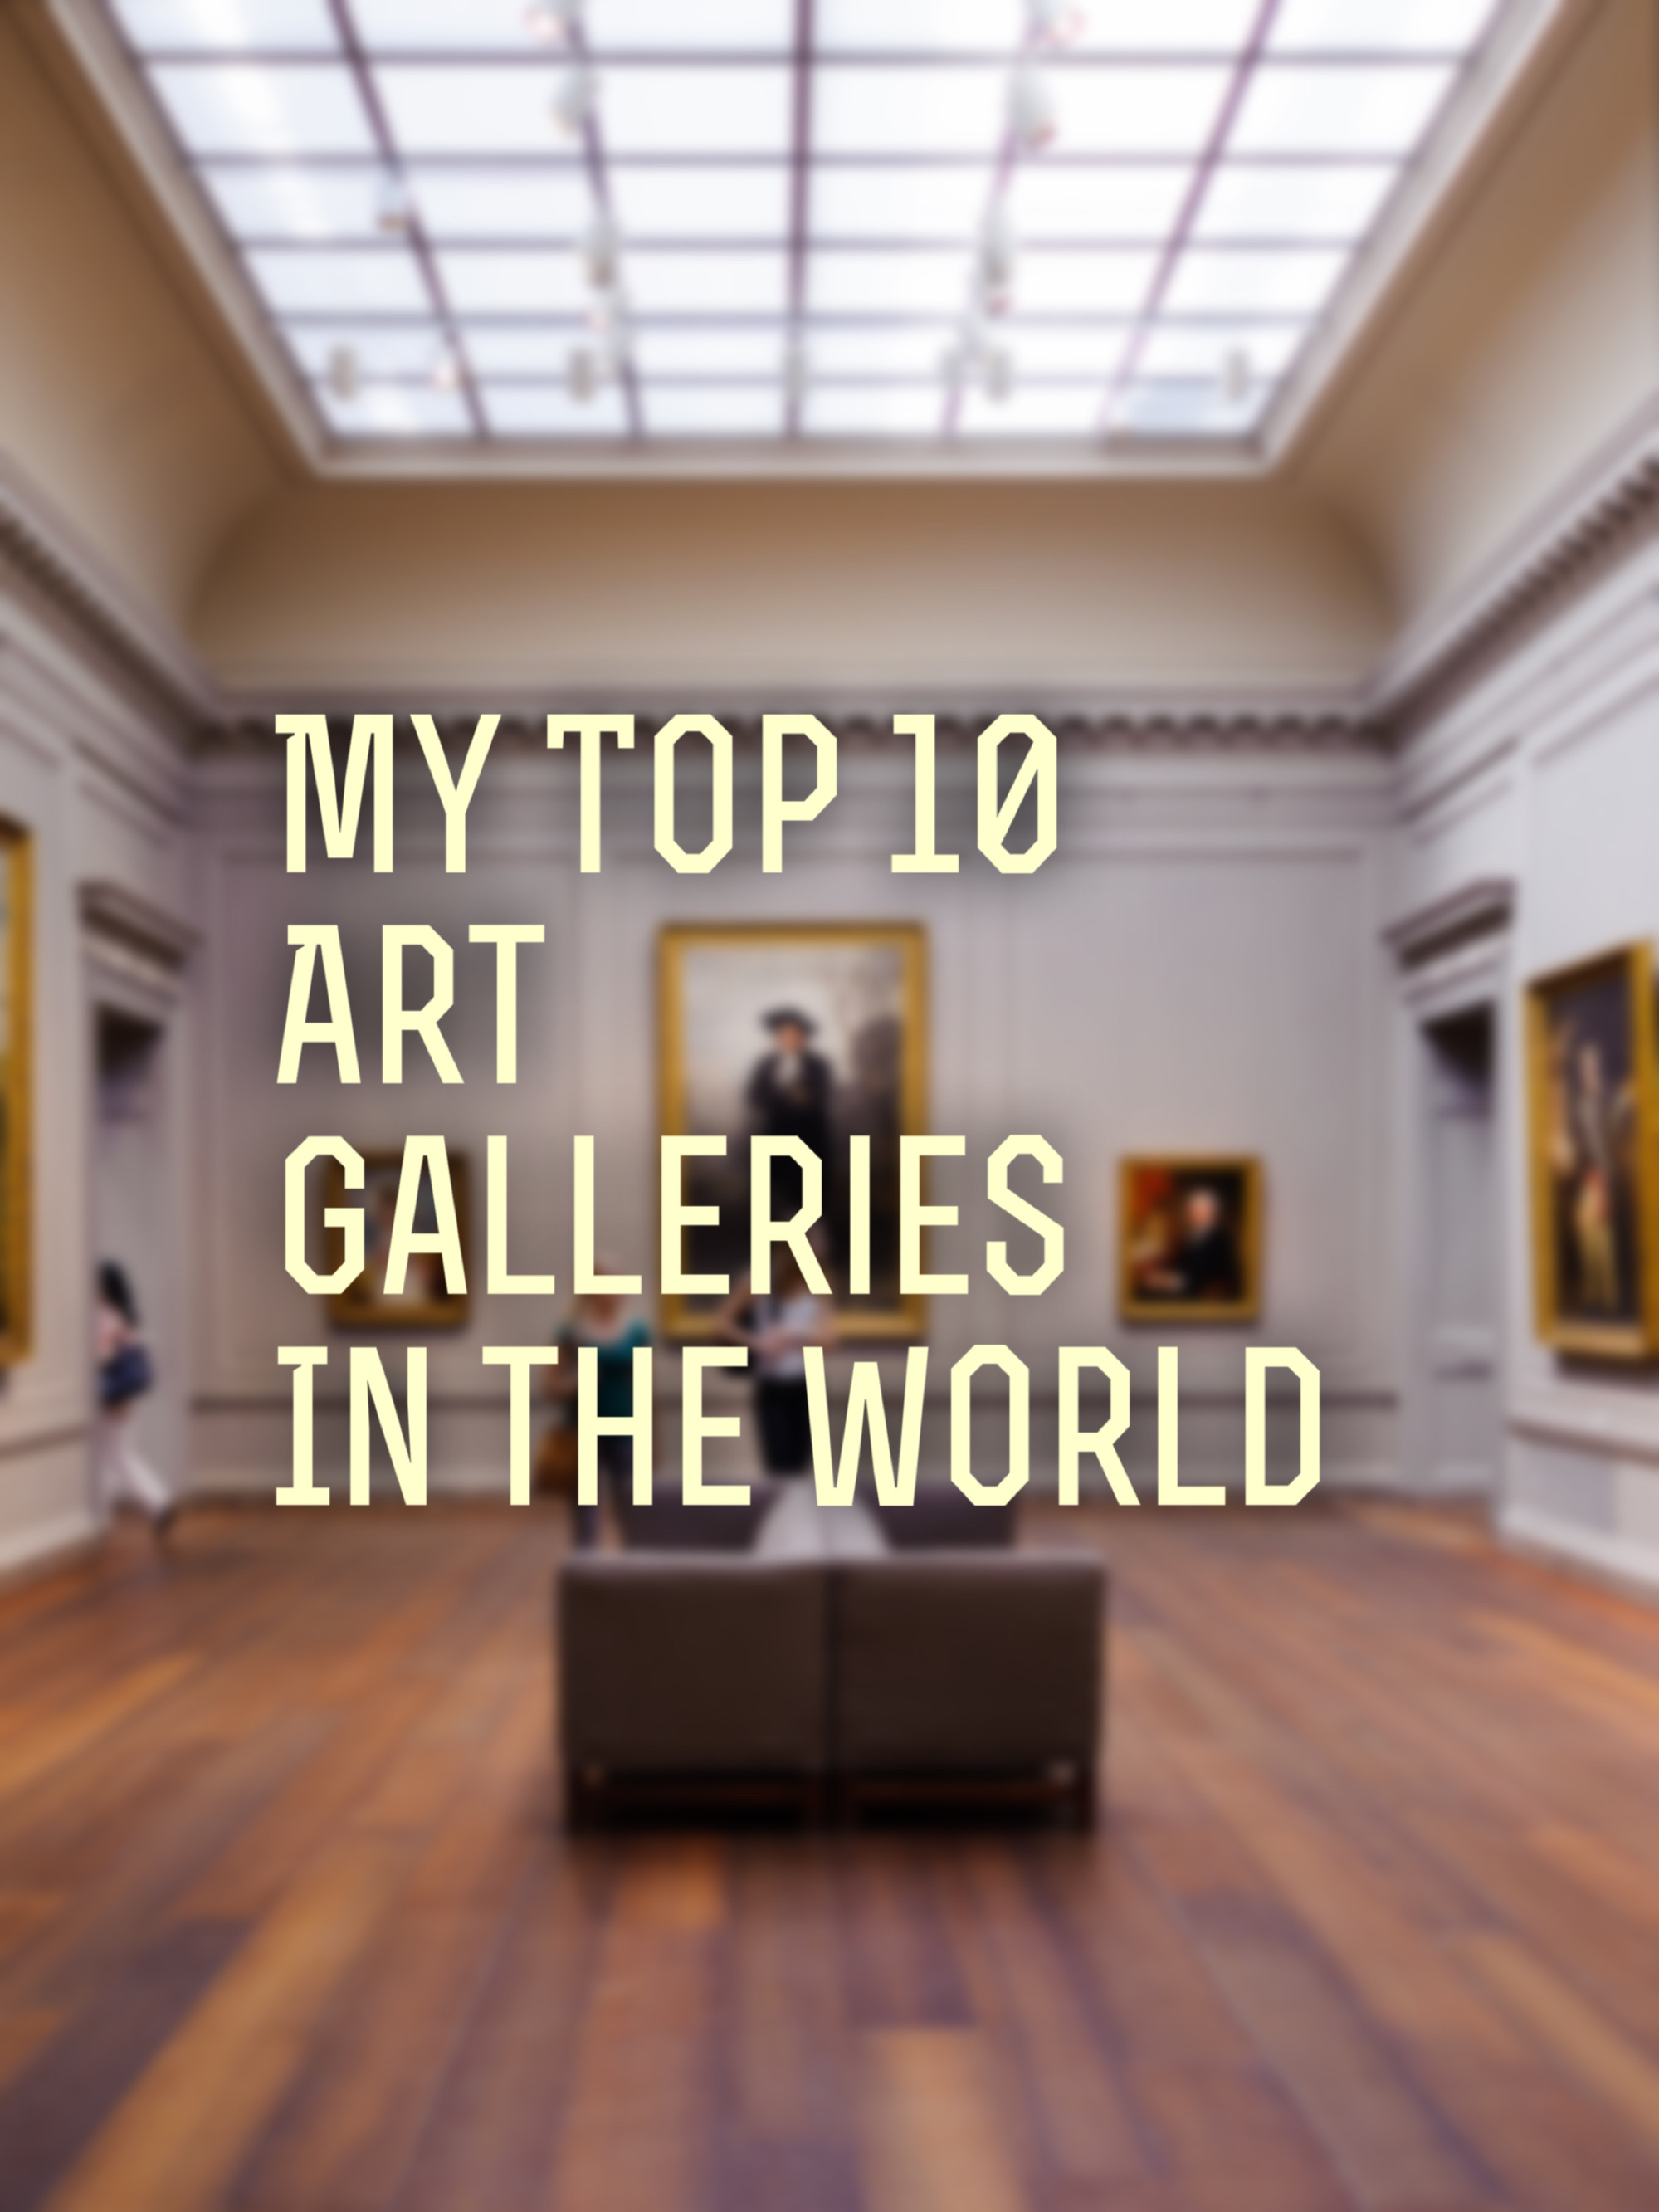 My Top 10 Classical Art Galleries in the World